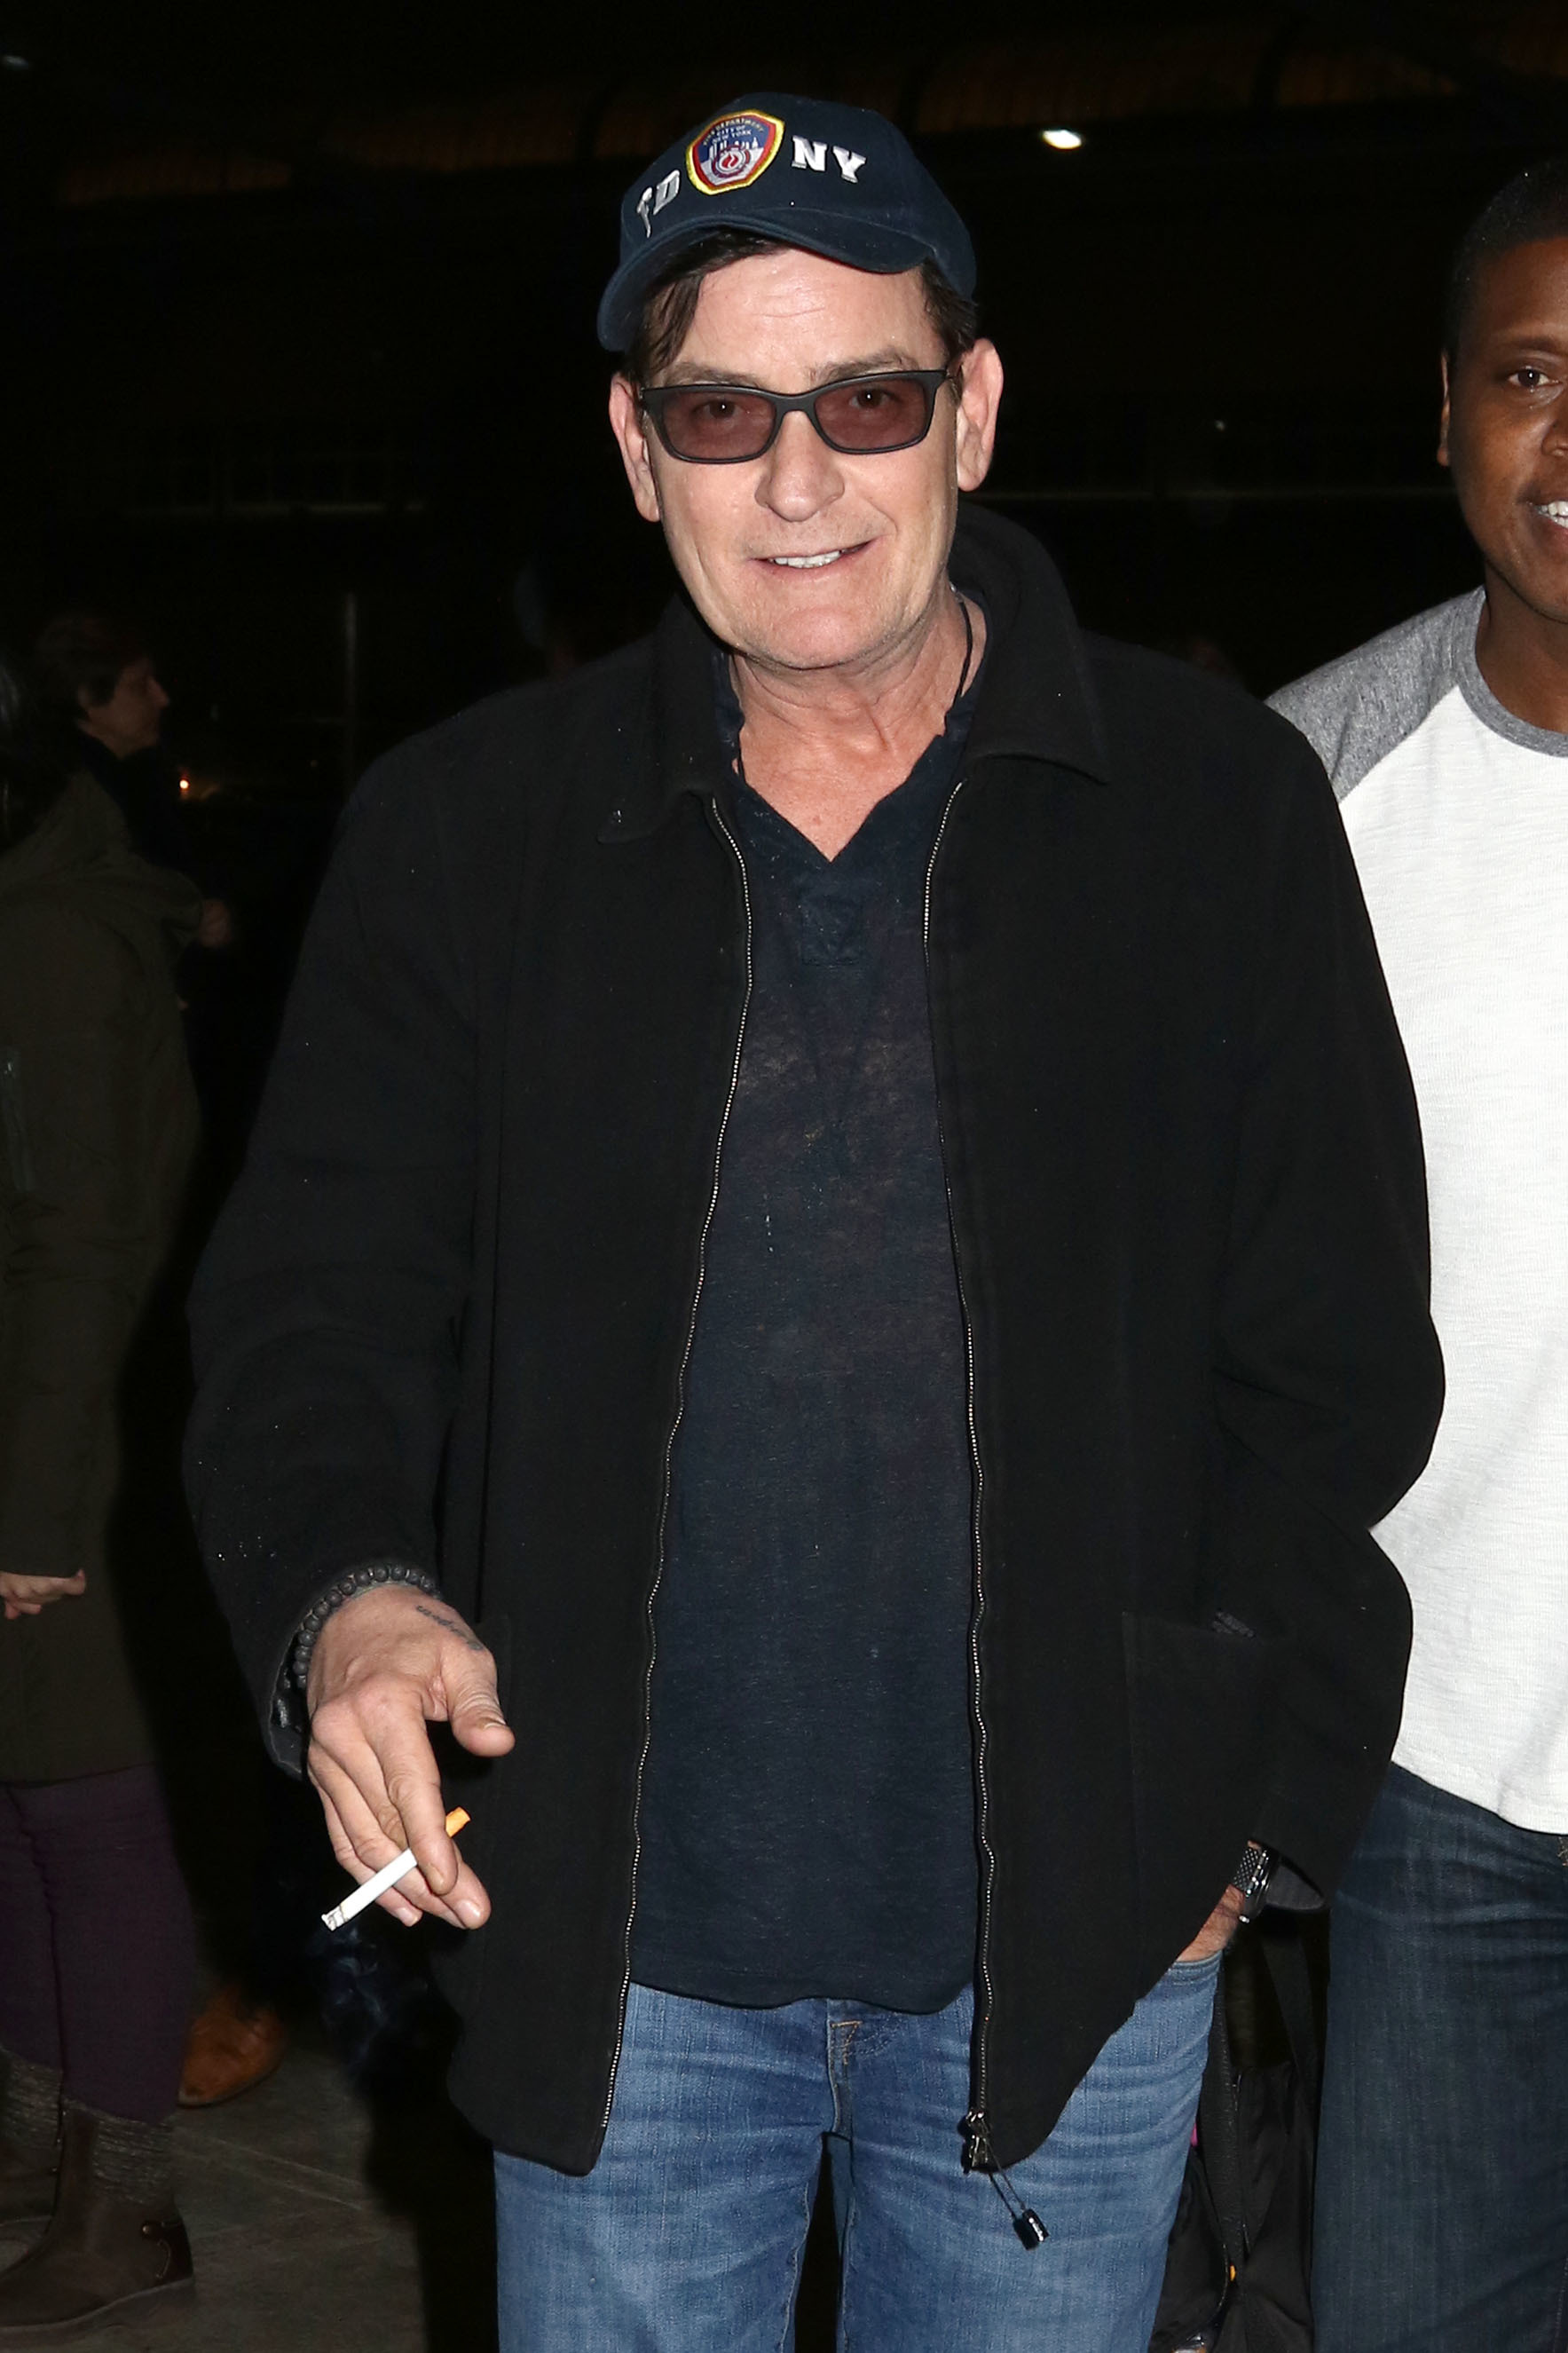 Feds order charlie sheens plane to land for drug inspection charlie sheen thecheapjerseys Choice Image